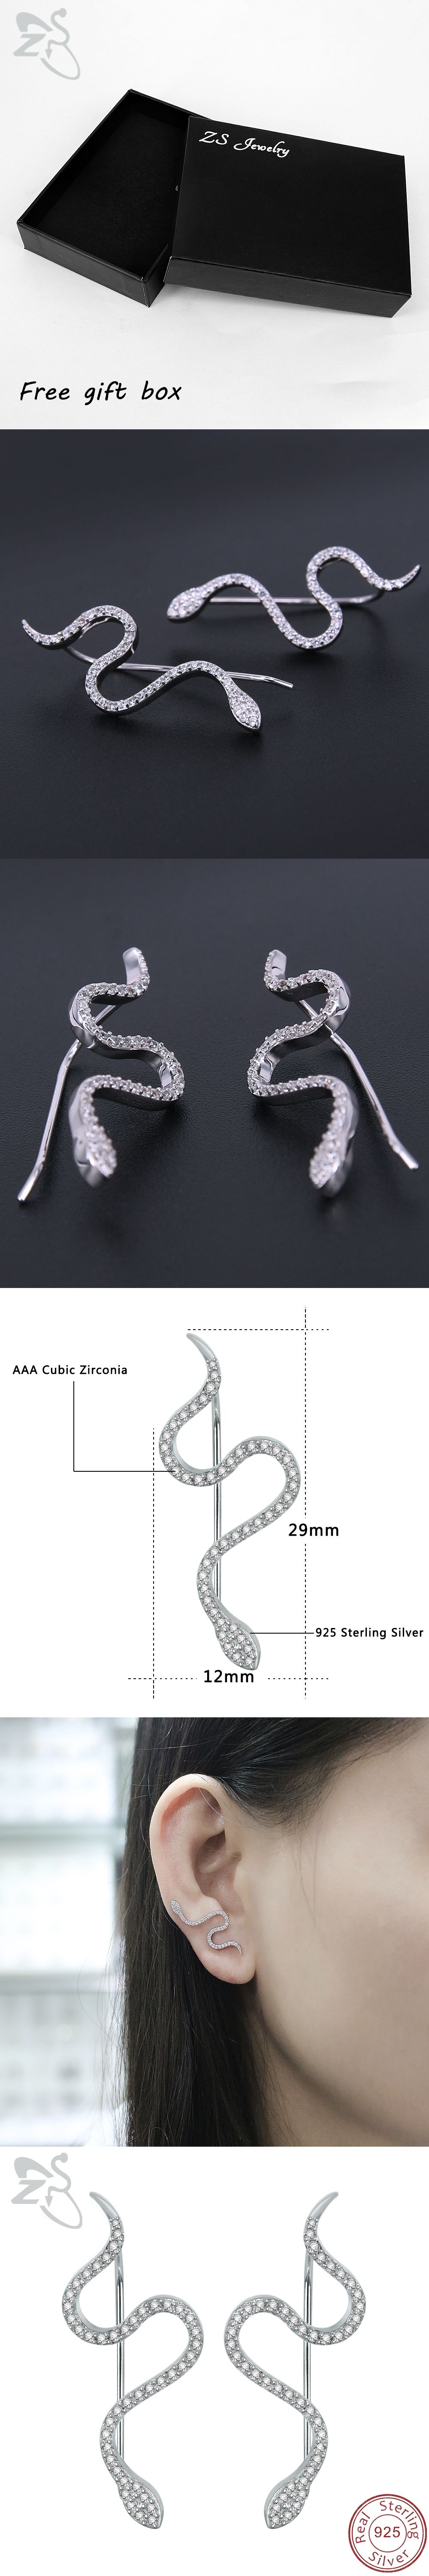 earrings stud trendy wheat vintage products for sterling fine silver party jewelry women